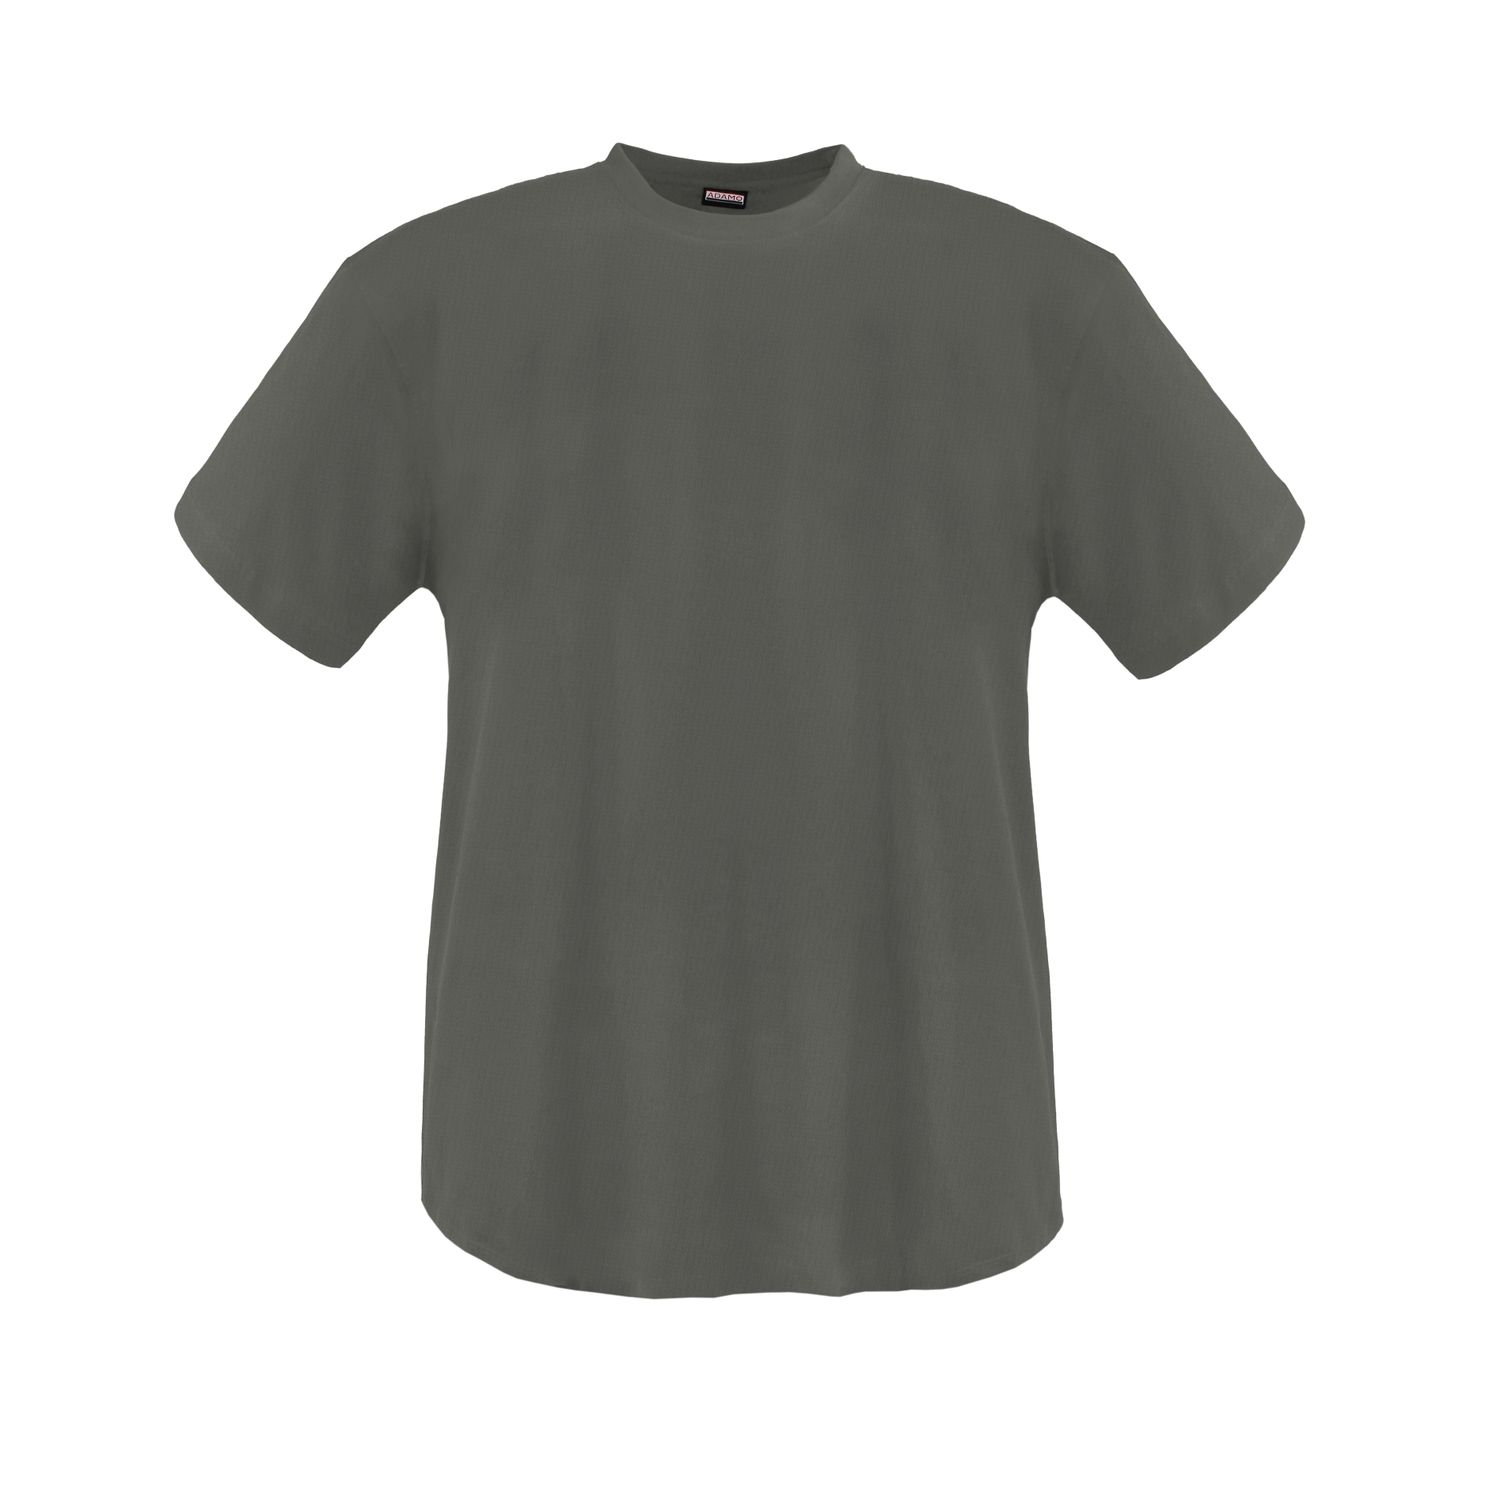 Detail Image to Double pack olive MARLON t-shirt by ADAMO up to kingsize 12XL